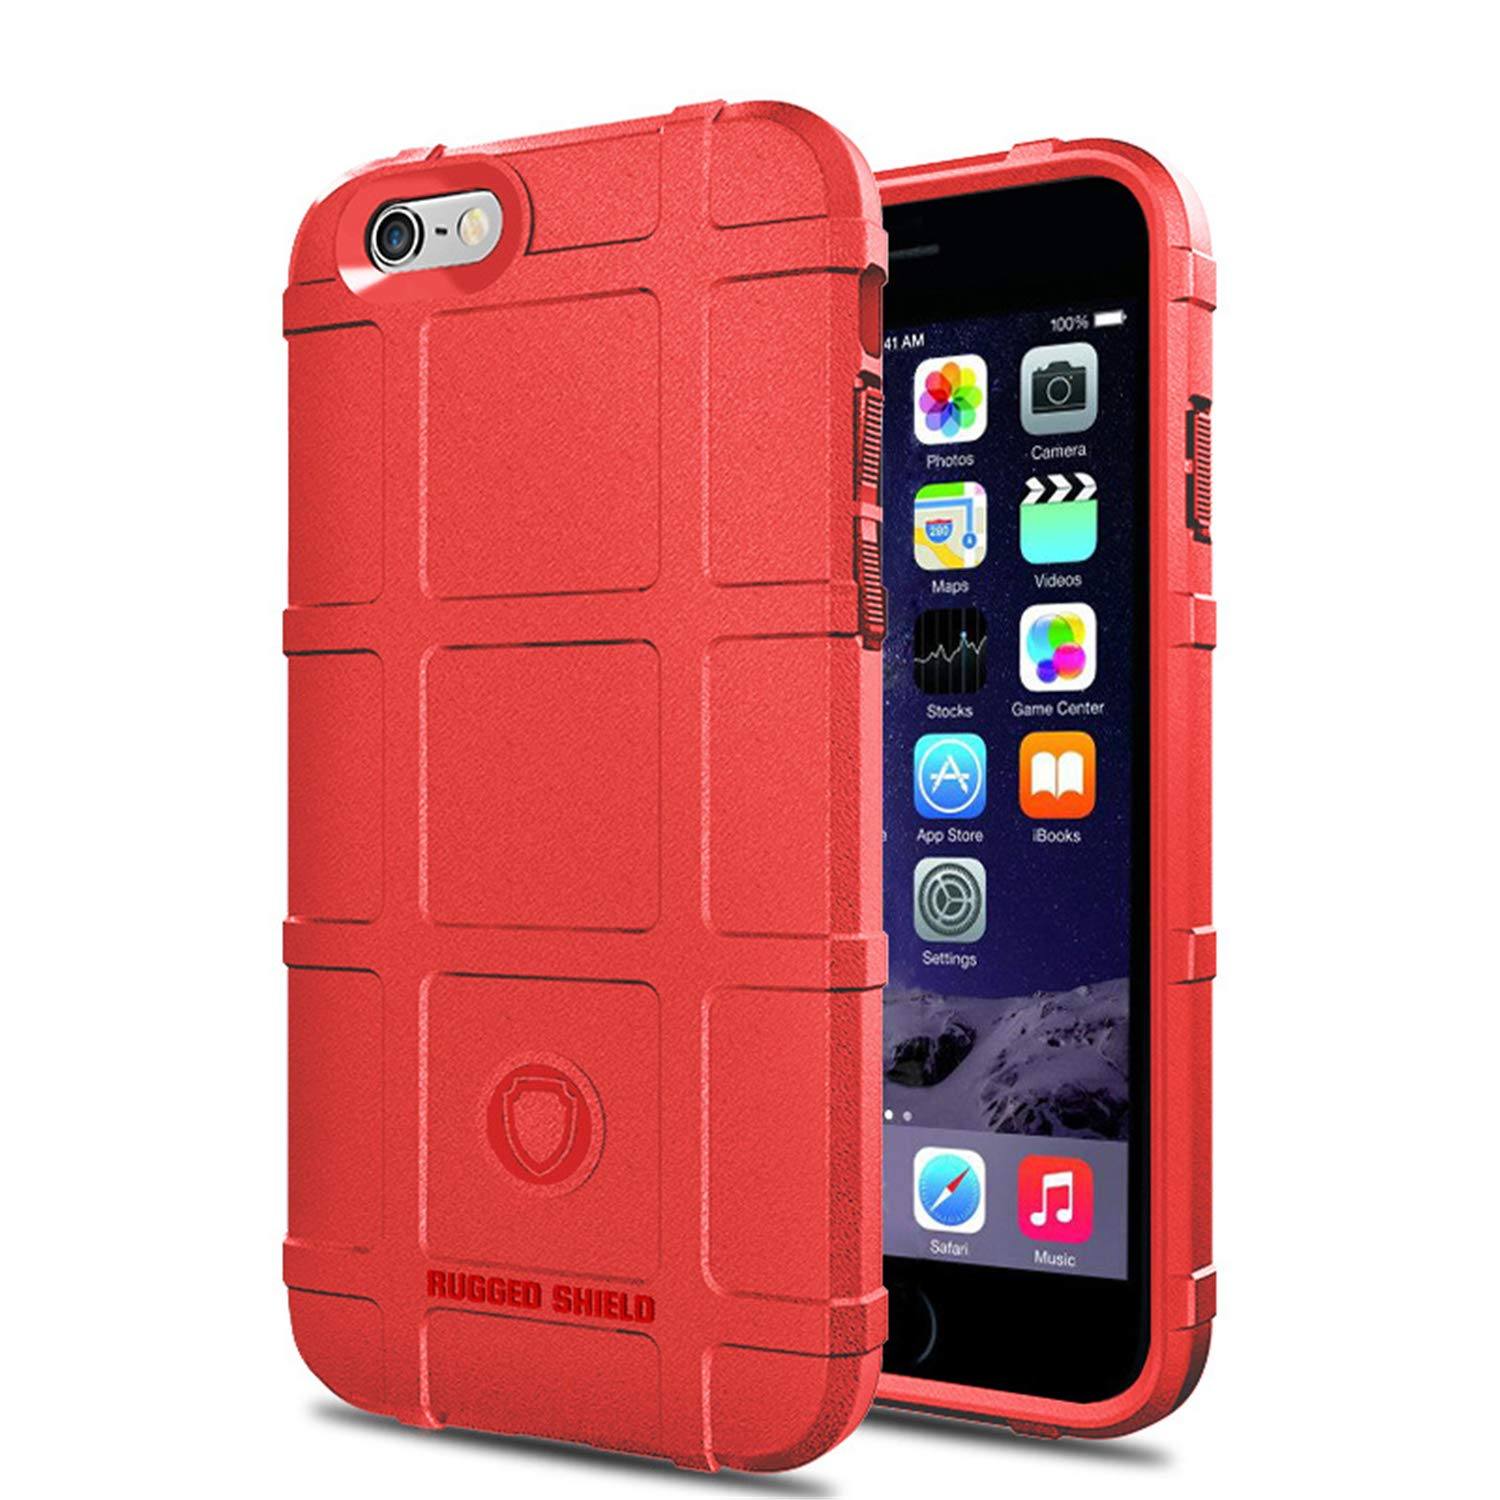 4d335ead22 Amazon.com: iPhone 6 6S Plus Case, Hybrid Armor Heavy Duty Military Grade  Drop Tested TPU Silicon Bumper Cover (iPhone 6 6S Plus, Black): Clothing